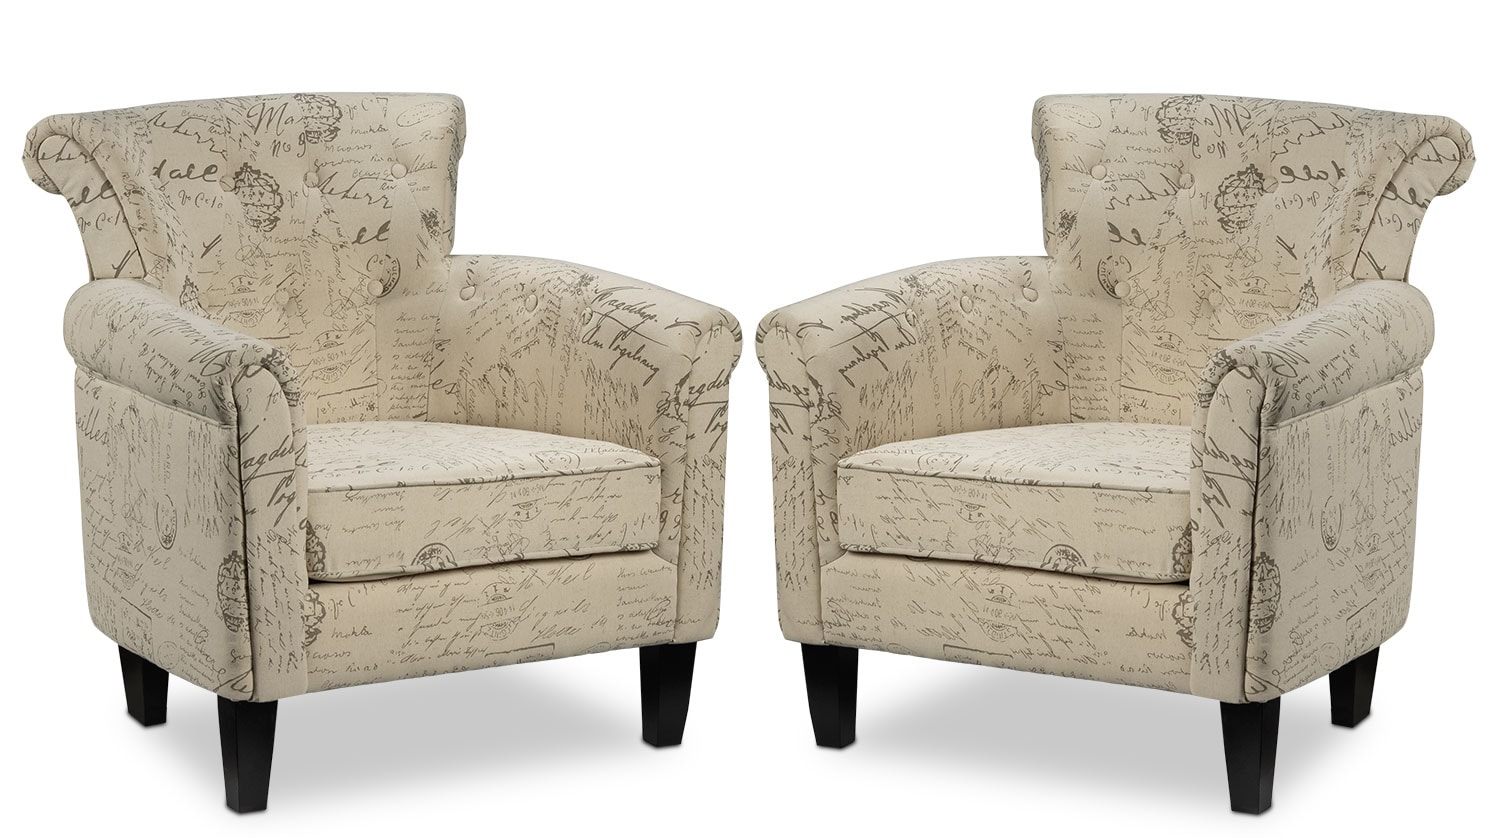 Living Room Furniture - Moniker 2-Pack of Accent Chairs - Scroll White